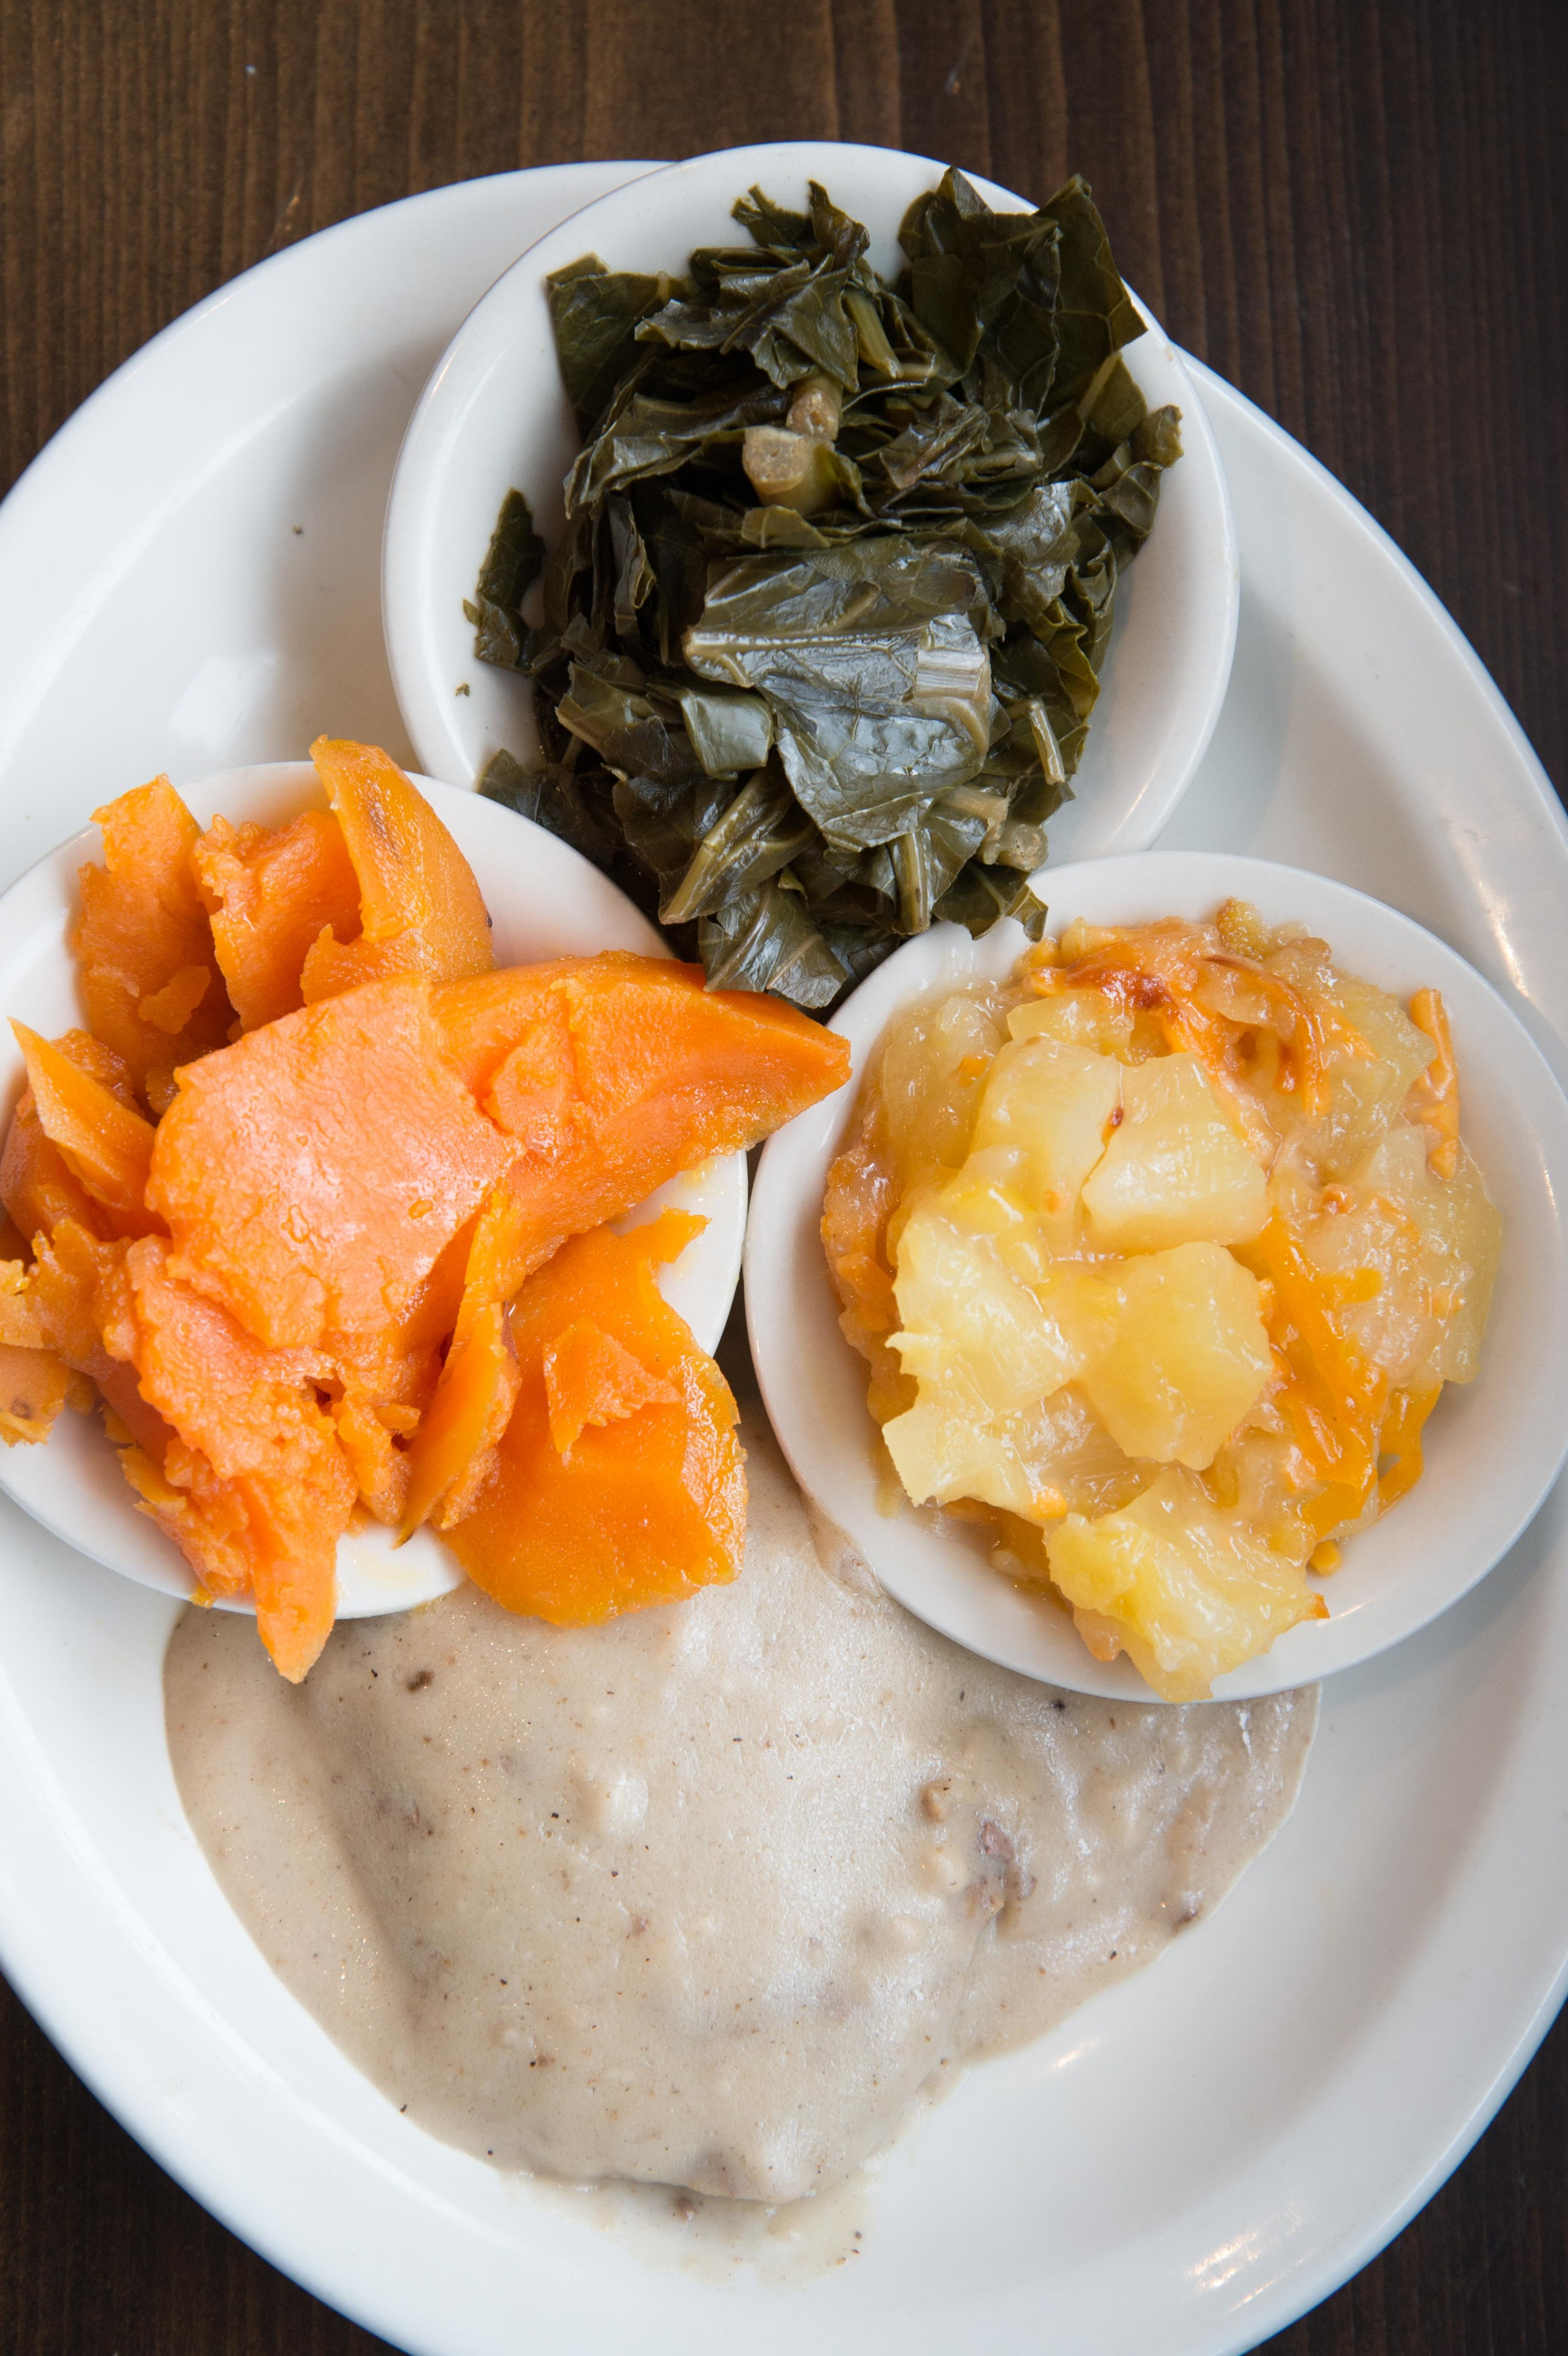 Vegetable Plate (collard greens, sweet potatoes, pineapple casserole, country-style steak)